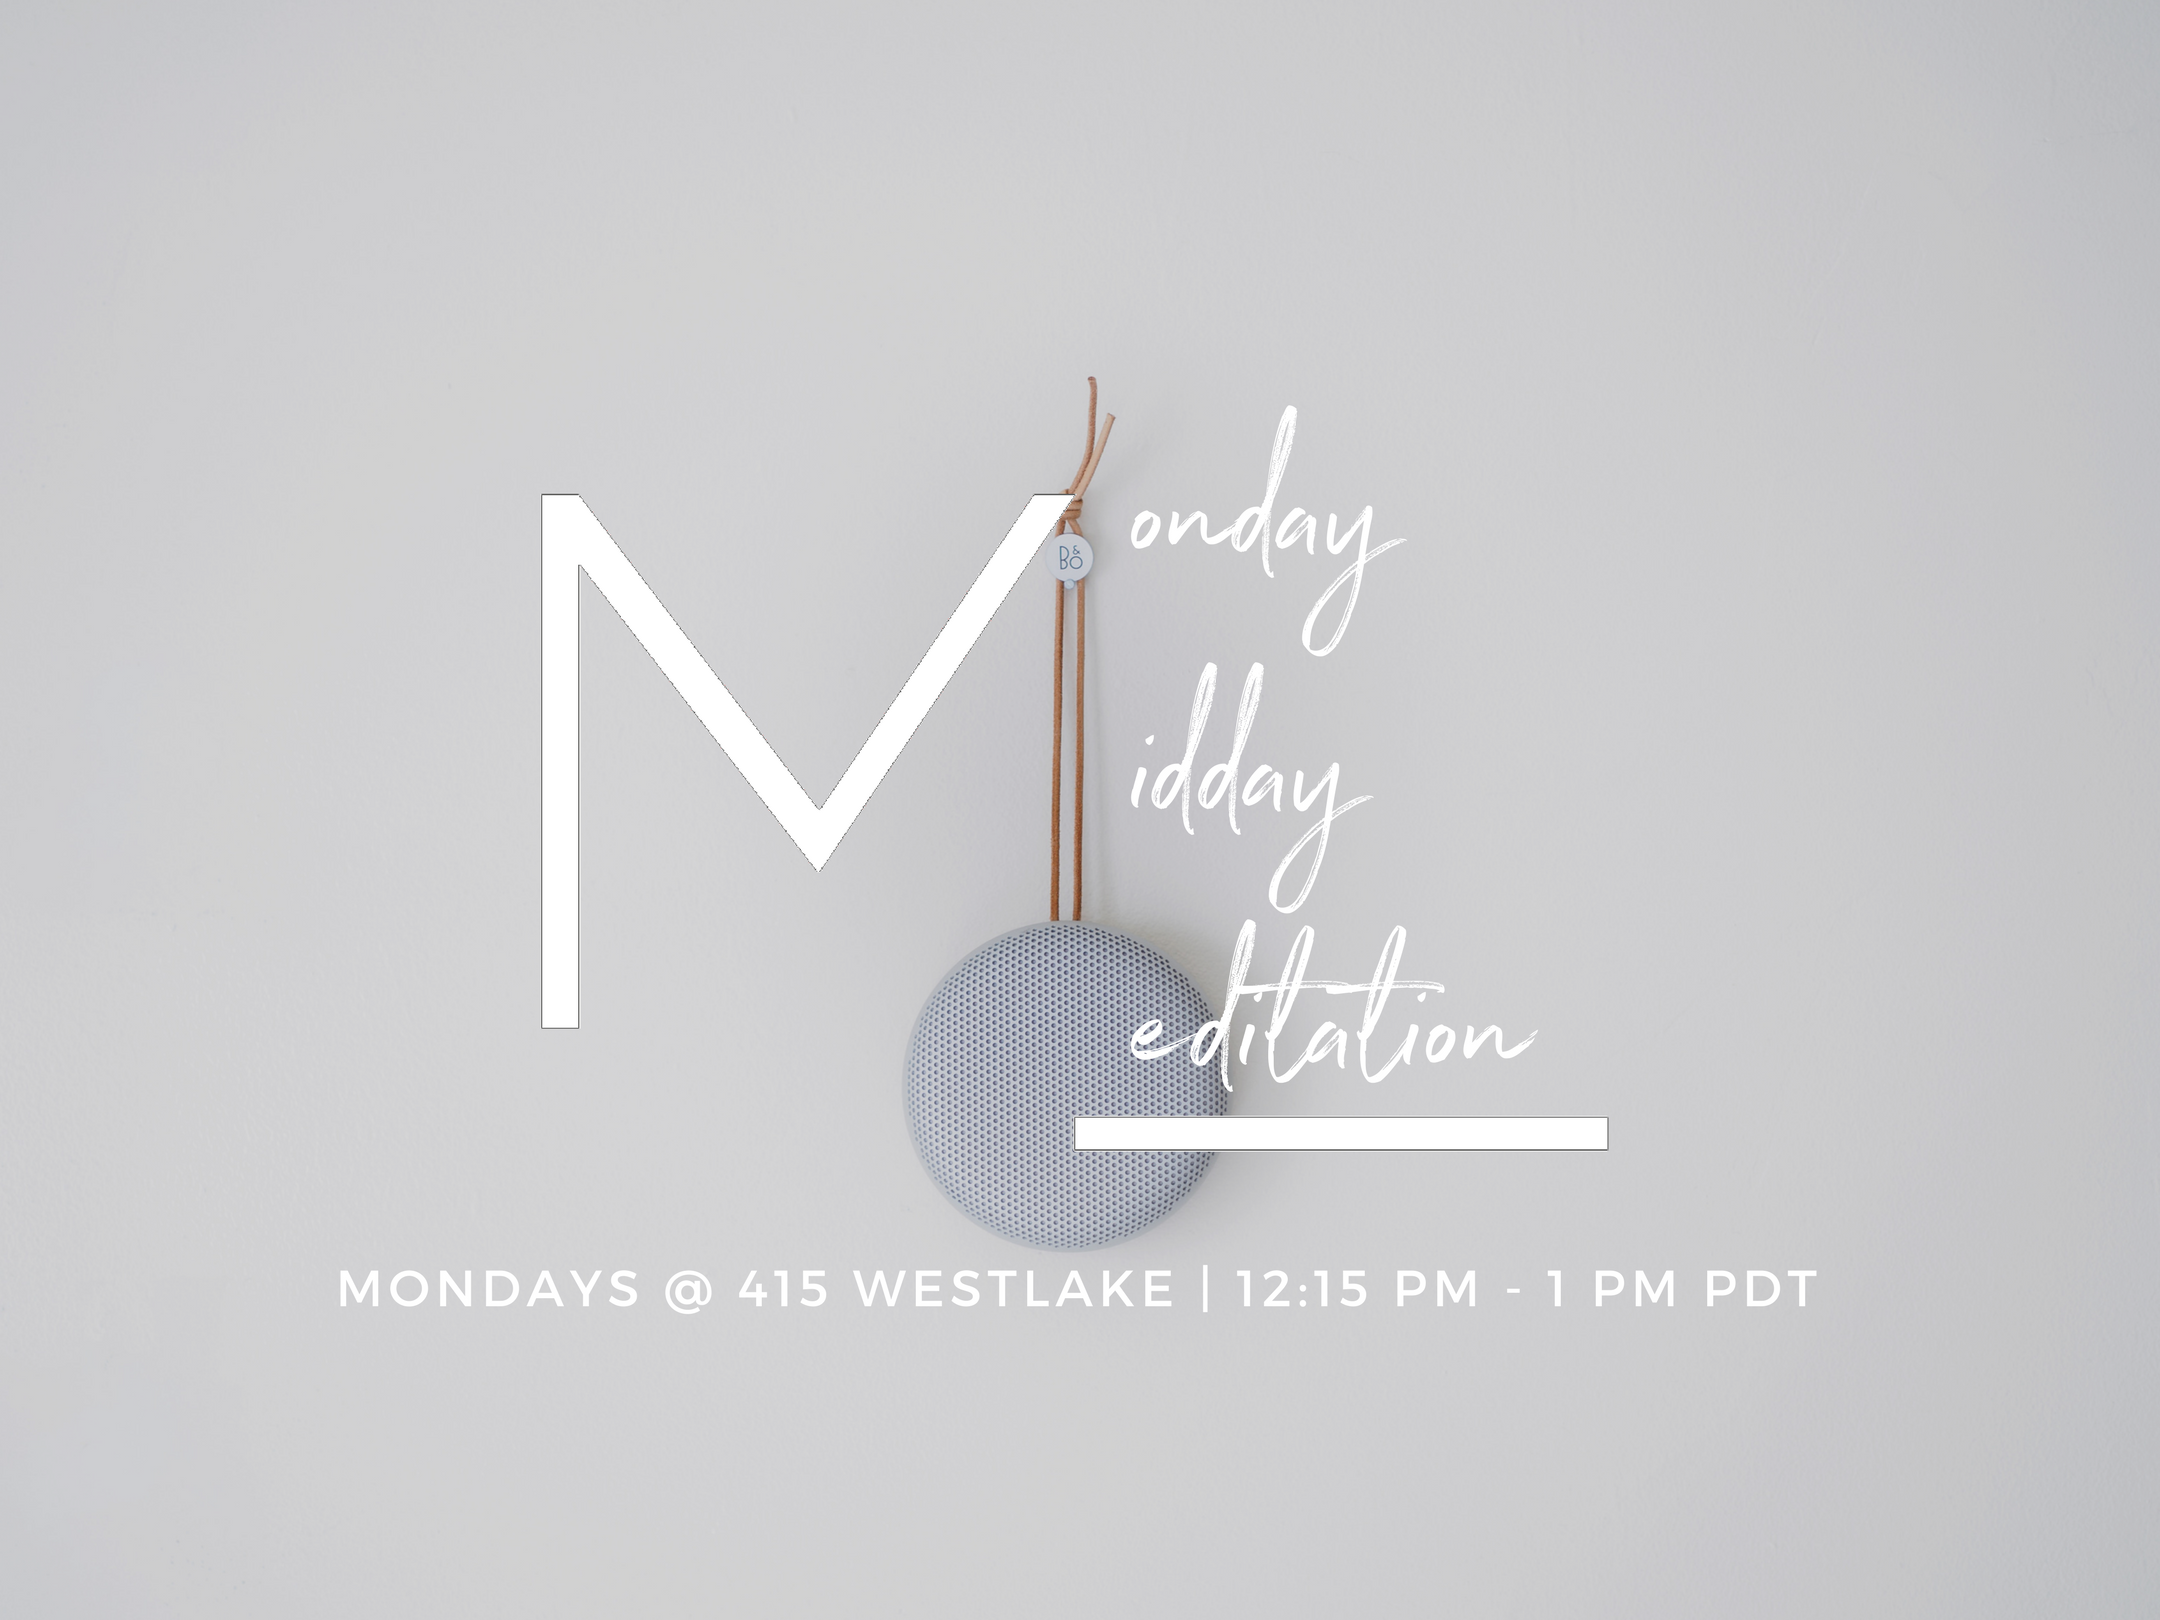 Amp up your week with modern meditation experts, Tay & Val, as you focus, fuel, and flow with Monday Midday Meditations at the beautiful 415 Westlake venue.  Your midday begins with a mindful tuning in practice to connect deeper within. This is followed by a guided meditation practice that leaves you focused on what matters (super helpful for the overwhelmed), fueled up for the week (especially if you're feeling meh), and in the state of flow (so you get to do your best work in the week ahead).  Leave your hurries and worries at the door and come sit with us. Center your mind, nourish your body, and connect within (+ with a like-vibed community).  TIMELINE OF EVENTS  12 noon: Doors Open 12:15 pm - 12:45 pm: Guided Meditation 12:45 pm - 1 pm: Q&A Discussion  SIT WITH US // All are welcomed  Whether you're a first-timer curious about meditation or a seasoned meditator looking to cultivate your practice -- no matter what your previous meditation experience is -- you're welcomed to sit with us. Bring a colleague or friend, and multiply the FUN!   (yes, we did just say FUN.)   Together, we'll also explore basics like:  How to sit and settle in  How to tune in and tune out  How to weave a steady practice into your unique (and sometimes out of control) schedule   Register for guaranteed seating. Drop-ins welcomed, too.  SIT FOR GOOD // Mary's Place  Mary's Place is a local nonprofit organization that empowers homeless women, children & families to reclaim their lives. For this event 33% of each ticket will be donated to Mary's Place to provide respite, nutrition, safety and shelter through its six Family Shelters with more than 400 beds, and two Family Centers that provide housing and employment services.  CO-CREATED @ 415 Westlake  415 Westlake is a distinctive northwest venue with high ceilings, large open space without posts, and high quality sound and video systmes for music, receptions, corporate and cultural events. Every Monday evening, the venue is transformed into